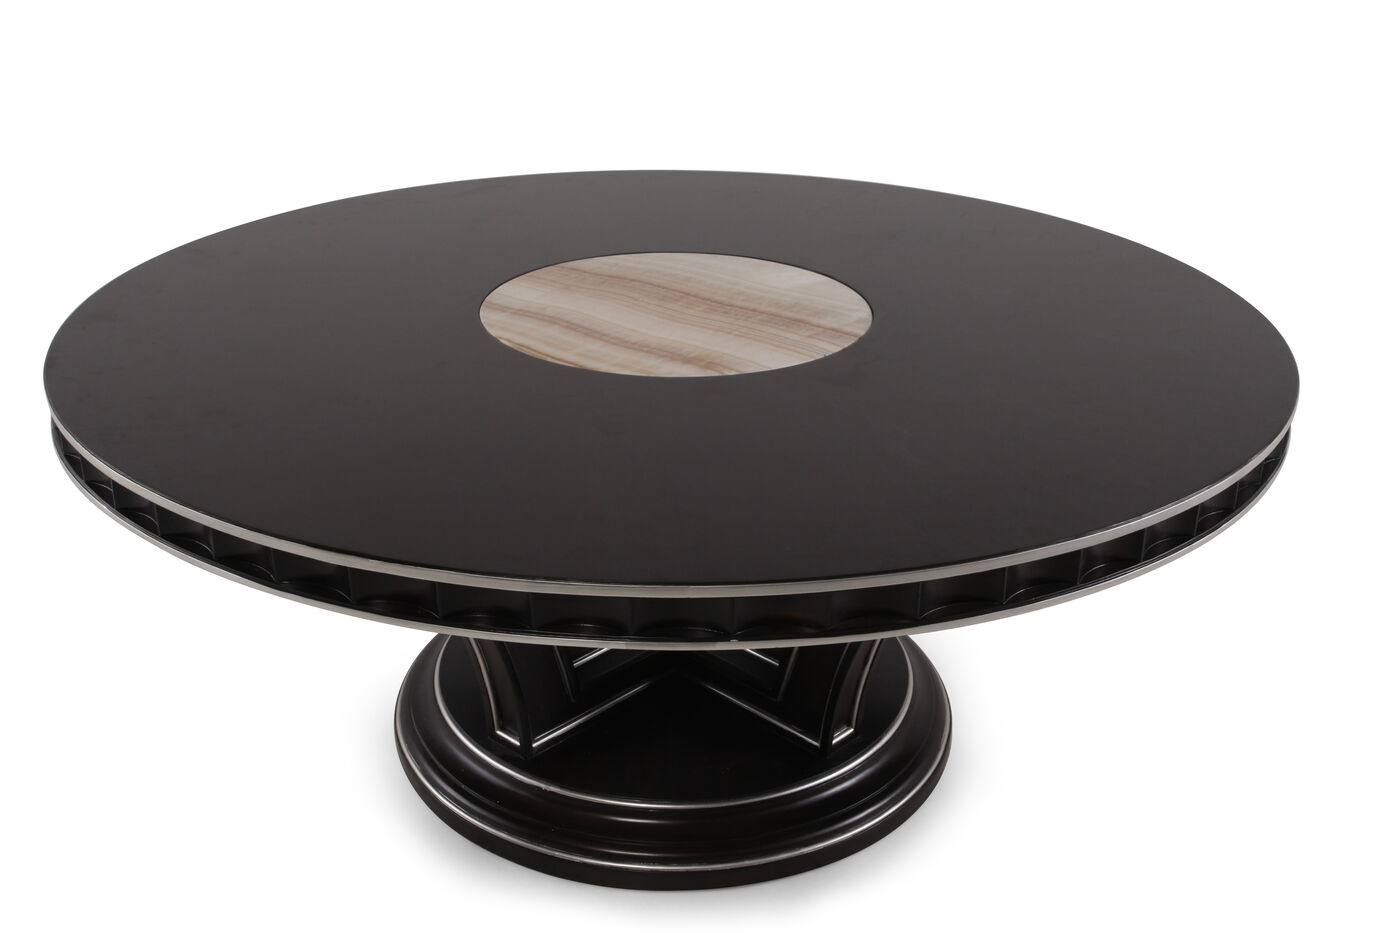 Caracole Mystique Round Dining Table Mathis Brothers  : IMG2240 from www.mathisbrothers.com size 1400 x 933 jpeg 66kB